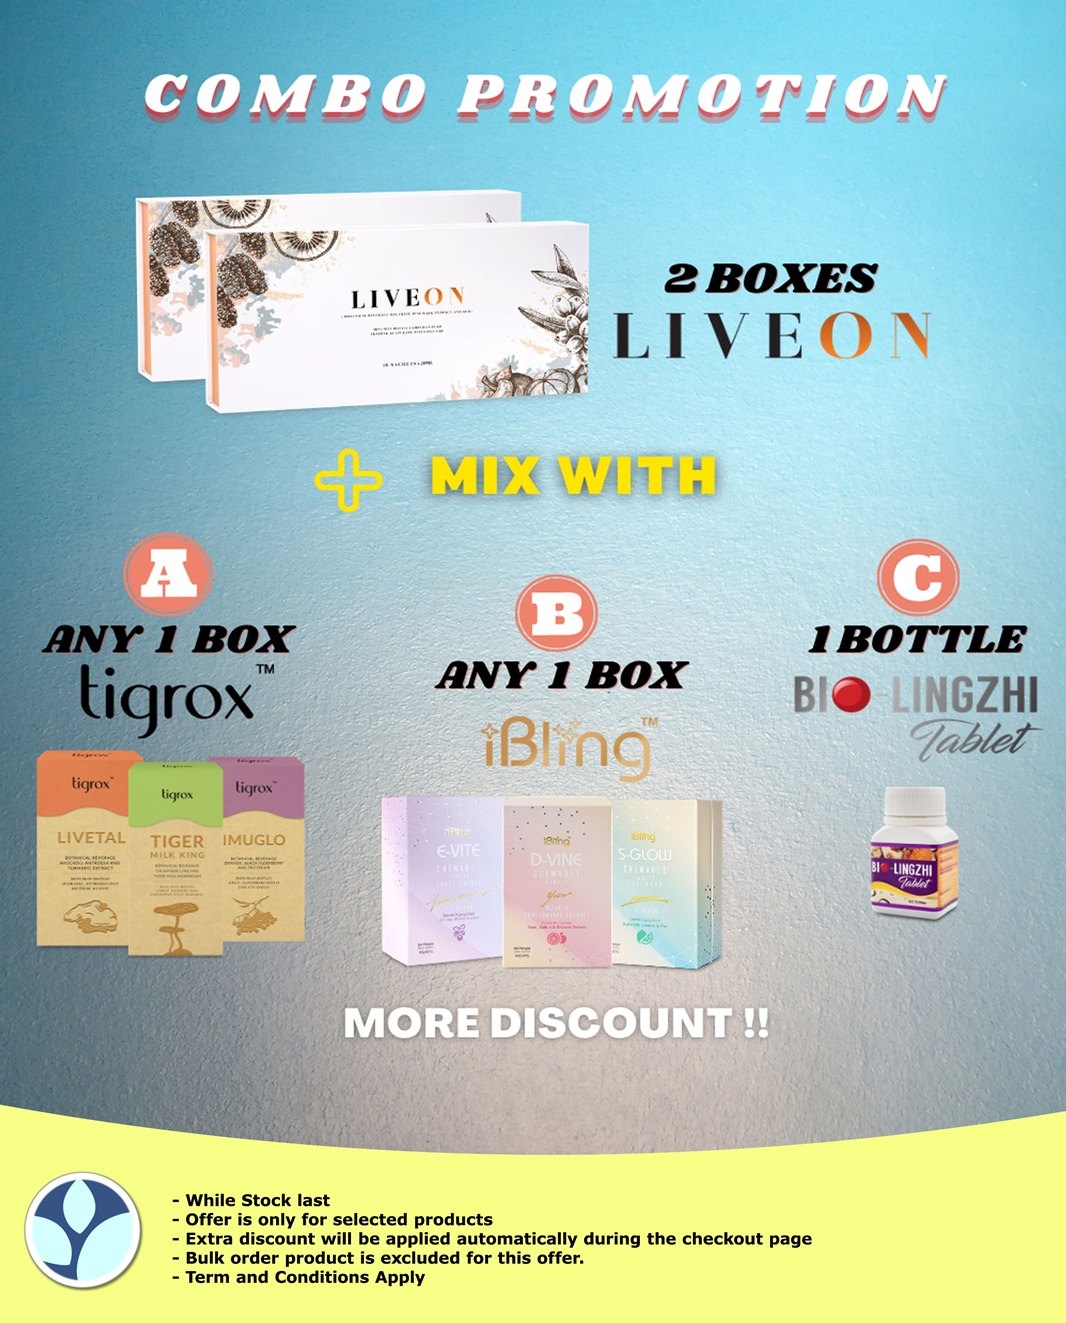 Liveon Package Promotion